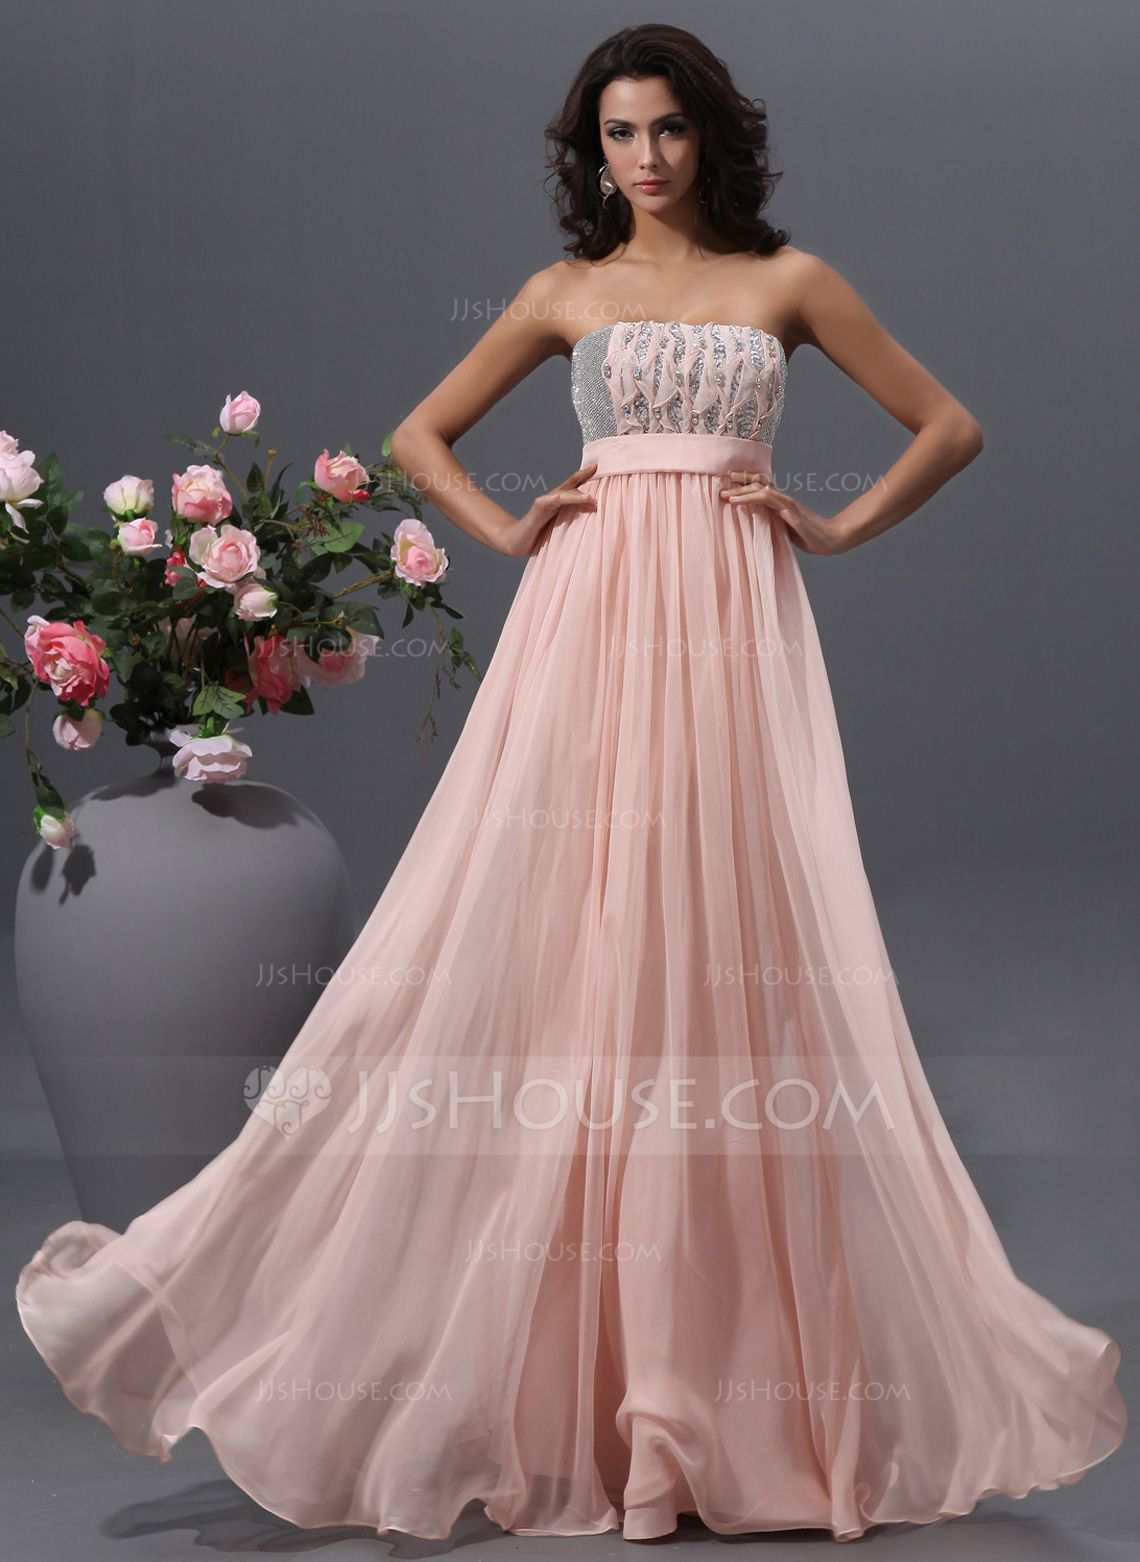 Empire strapless floorlength chiffon prom dress with beading